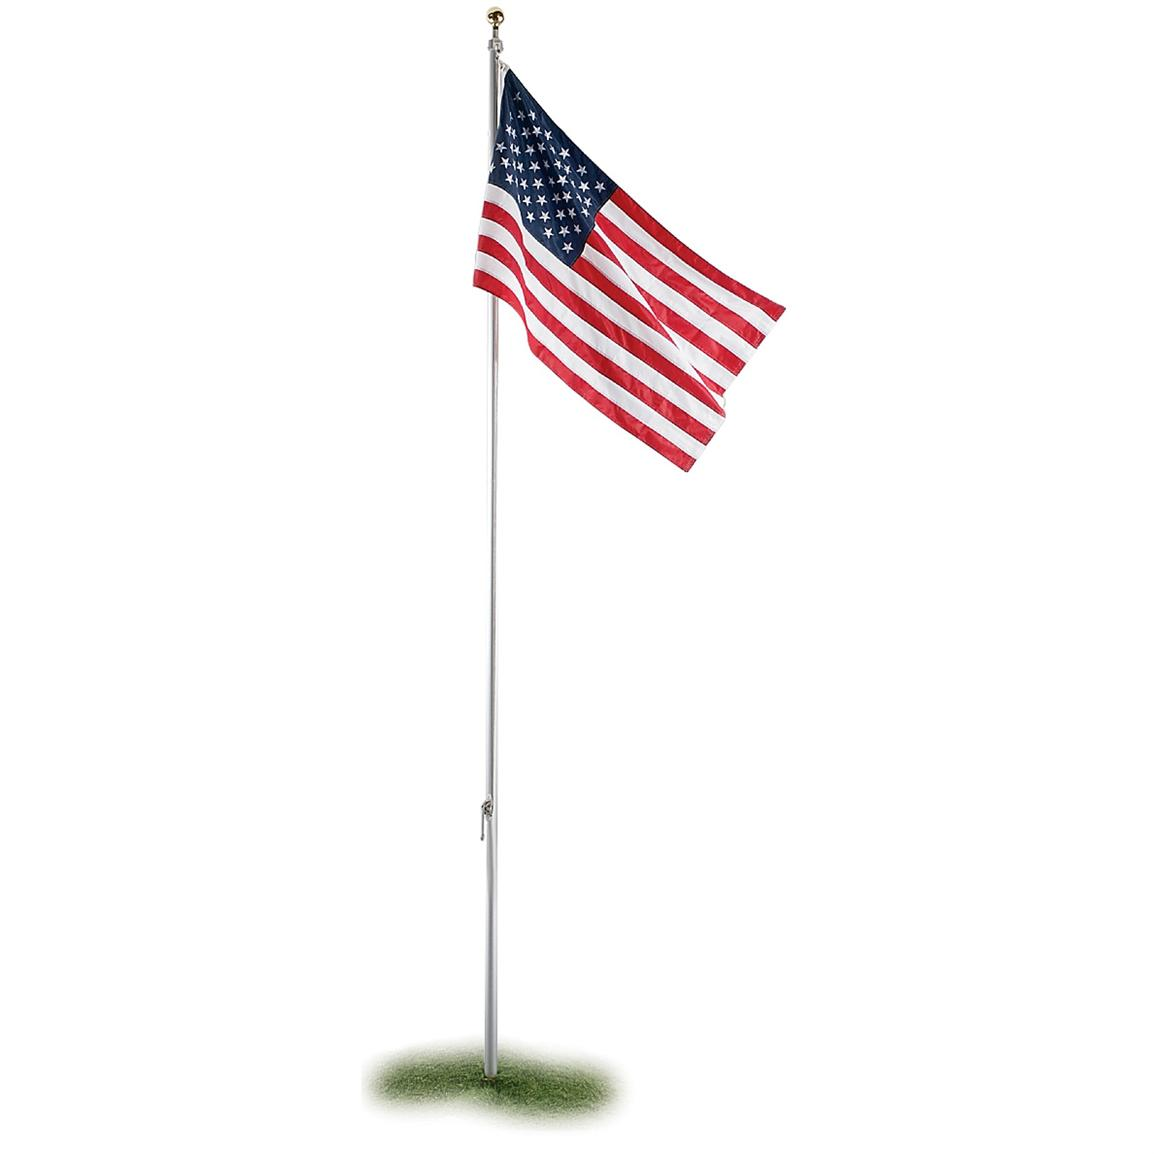 Us flag pole clipart vector freeuse download Flag Pole Clipart - Clipart Kid vector freeuse download